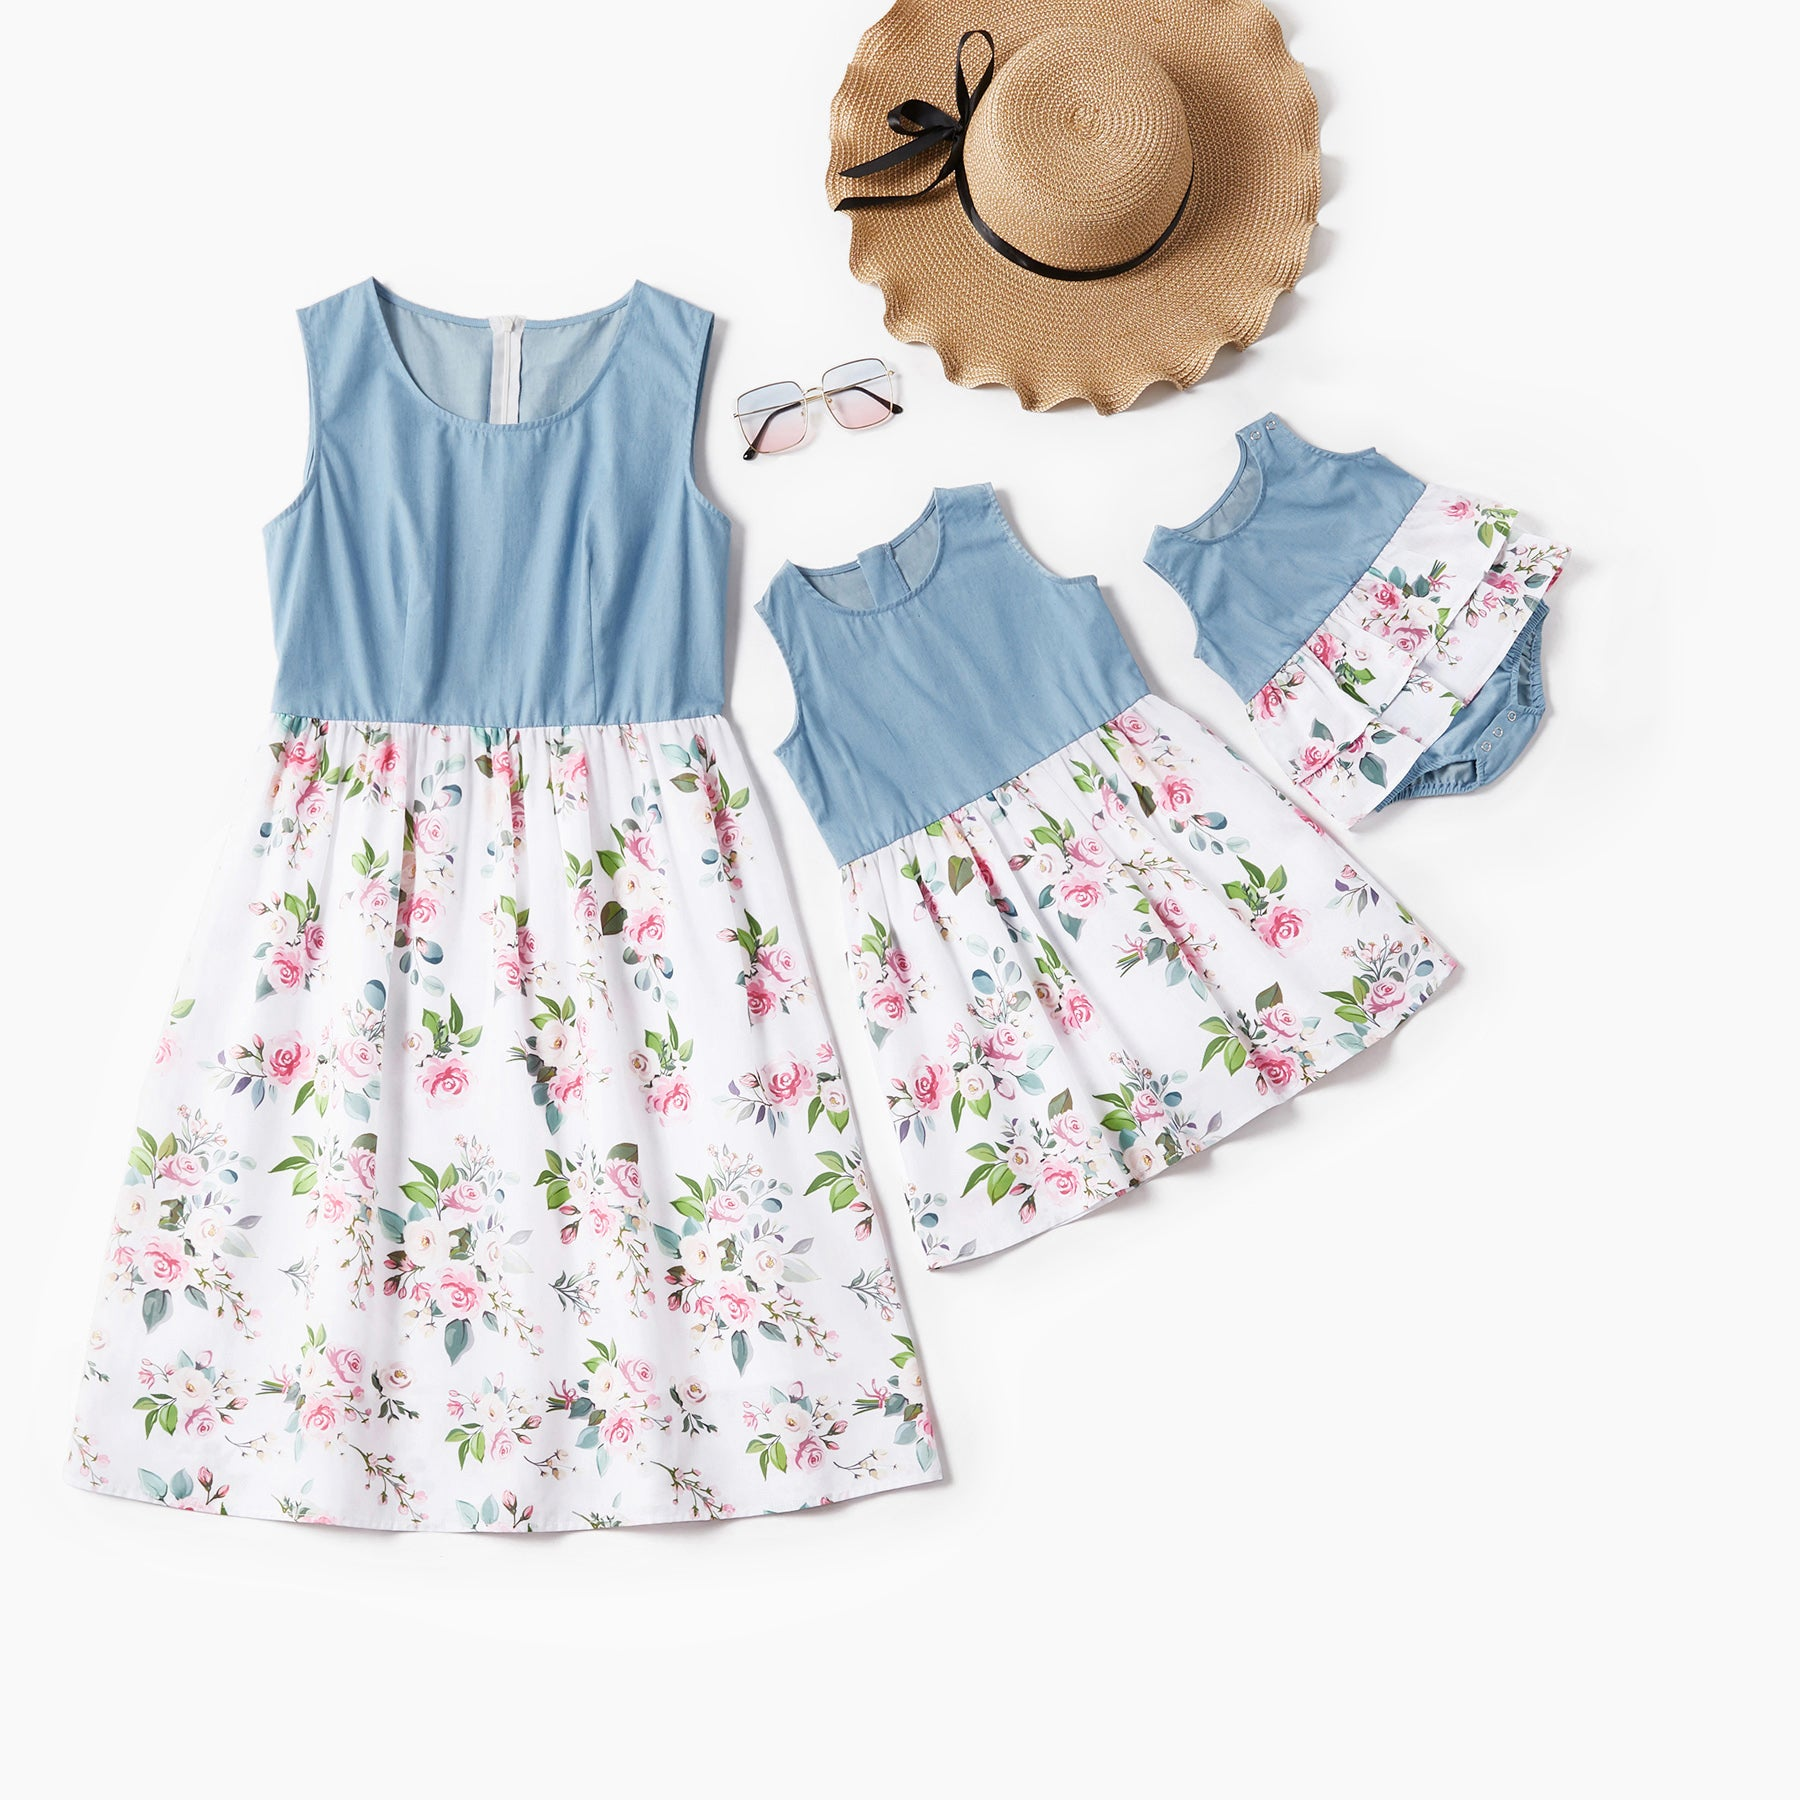 Mosaic Mommy and Me Cotton Floral Denim Tank Dresses